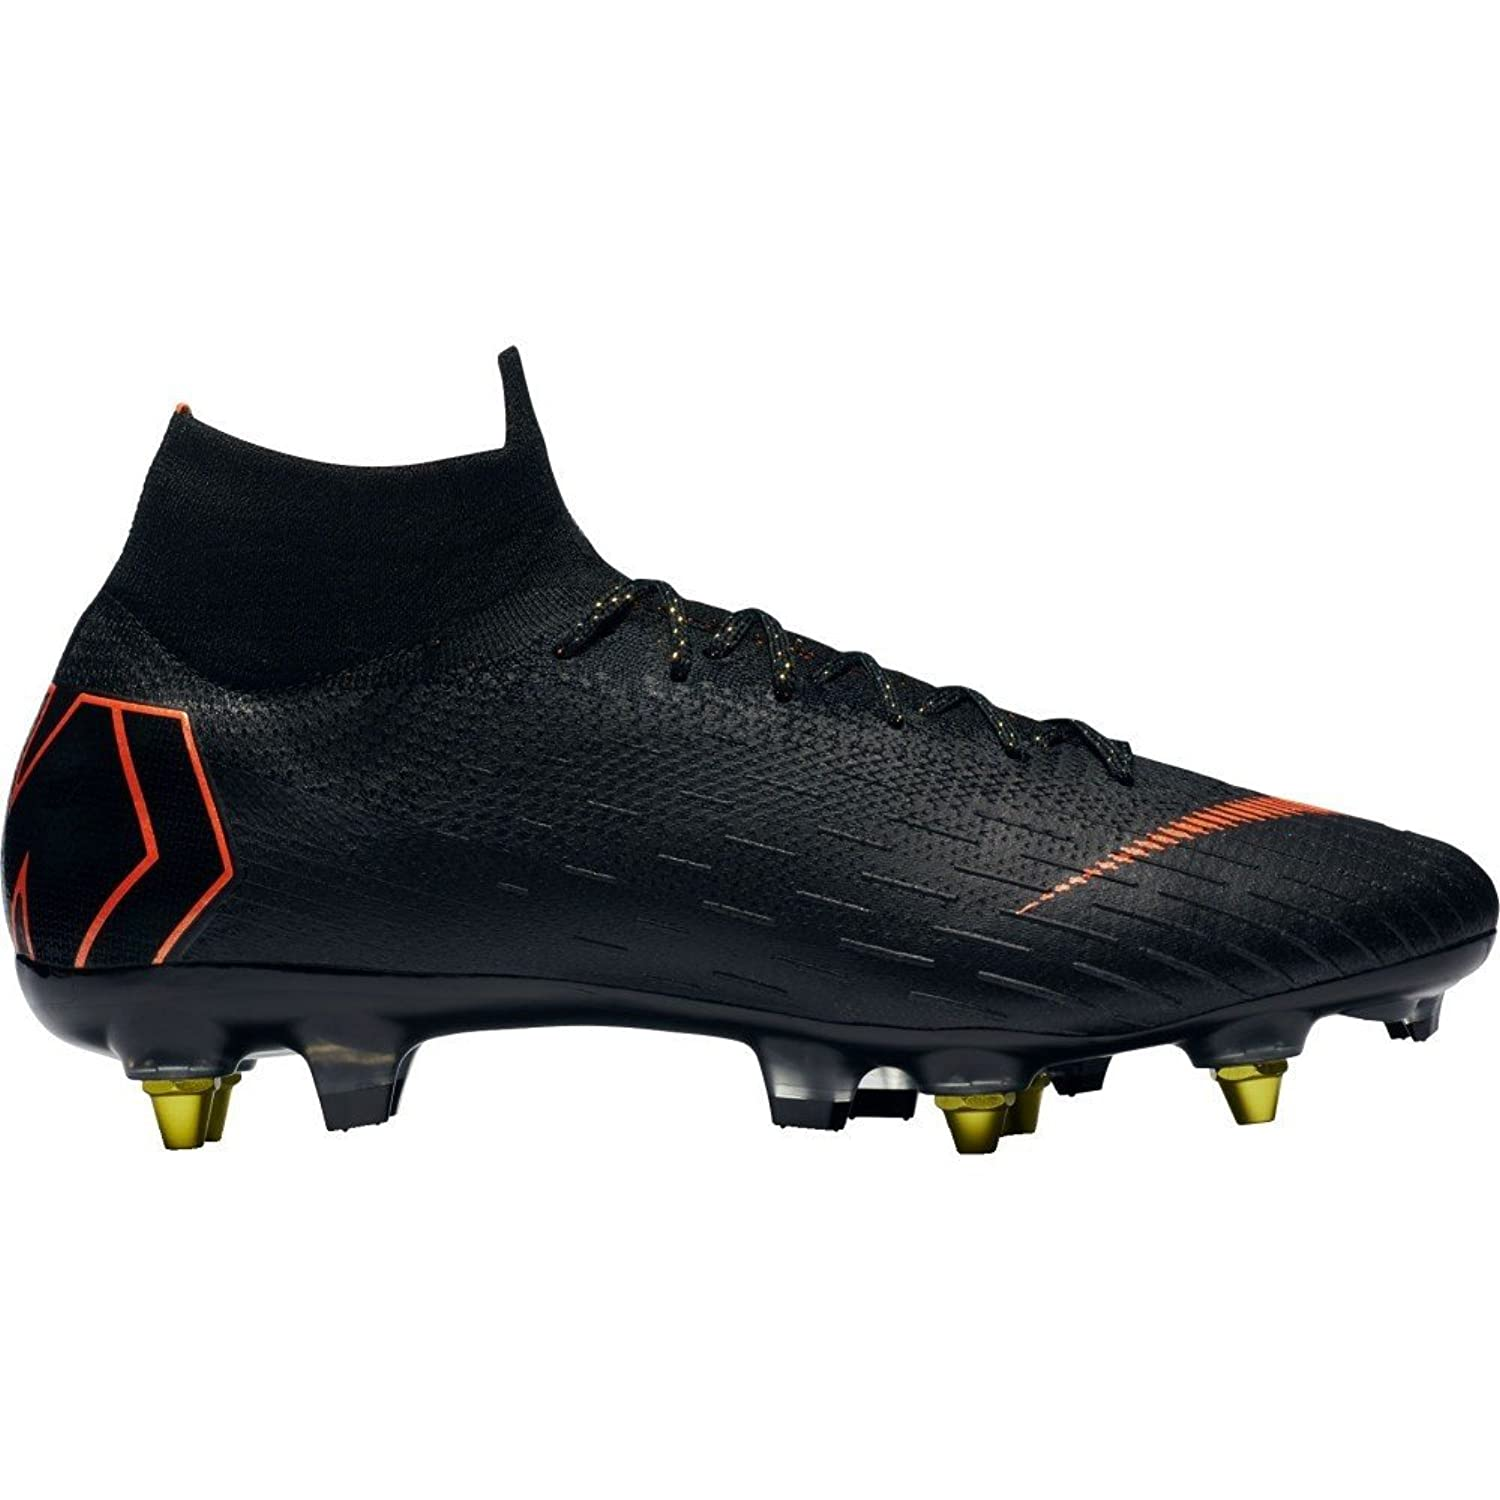 (ナイキ) Nike メンズ サッカー シューズ靴 Nike Mercurial Superfly 6 Elite SG-Pro Soccer Cleats [並行輸入品] B07BPT3X3Y M7.5/W9-Medium